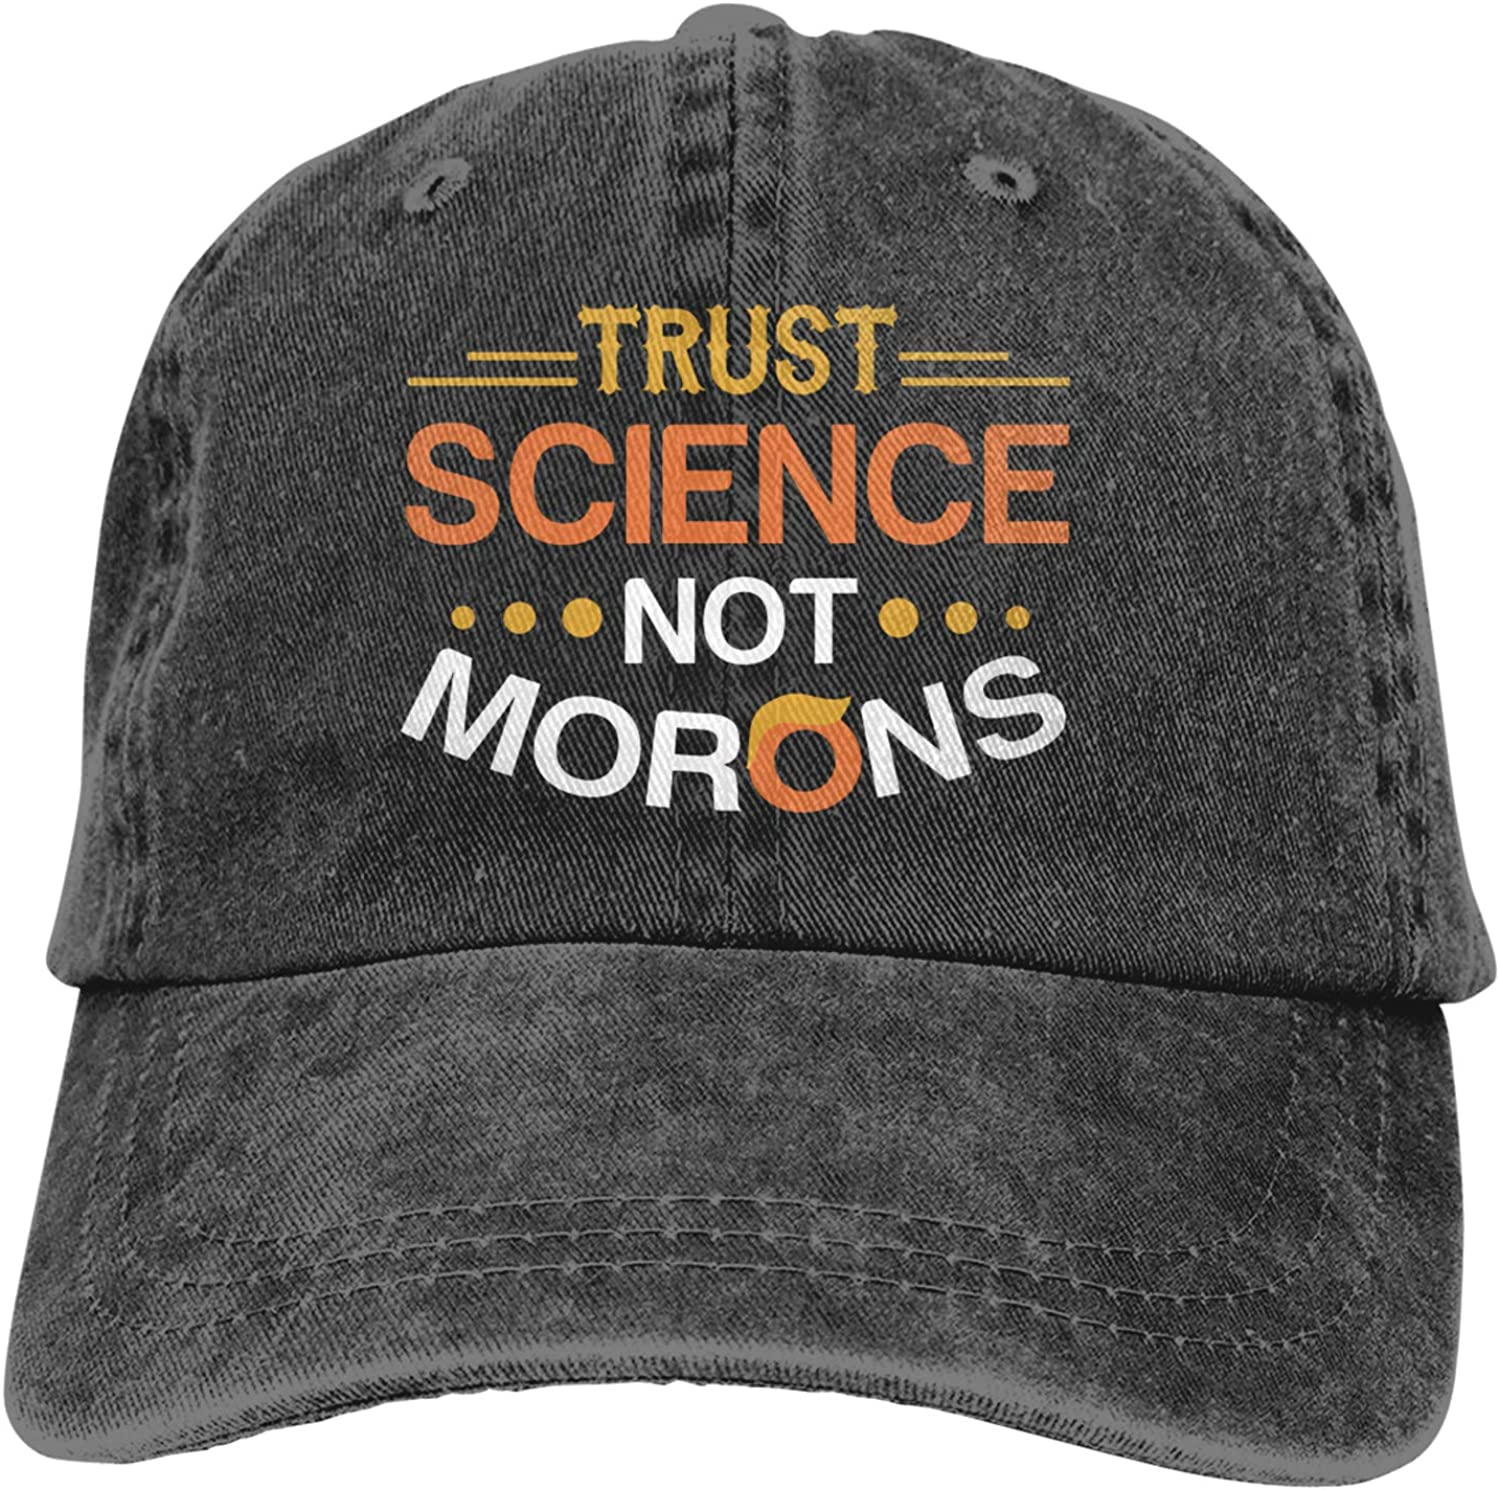 Trust Science Not Max 86% Max 85% OFF OFF Morons Cap Unisex W Hip-Hop Adjustable Fashion